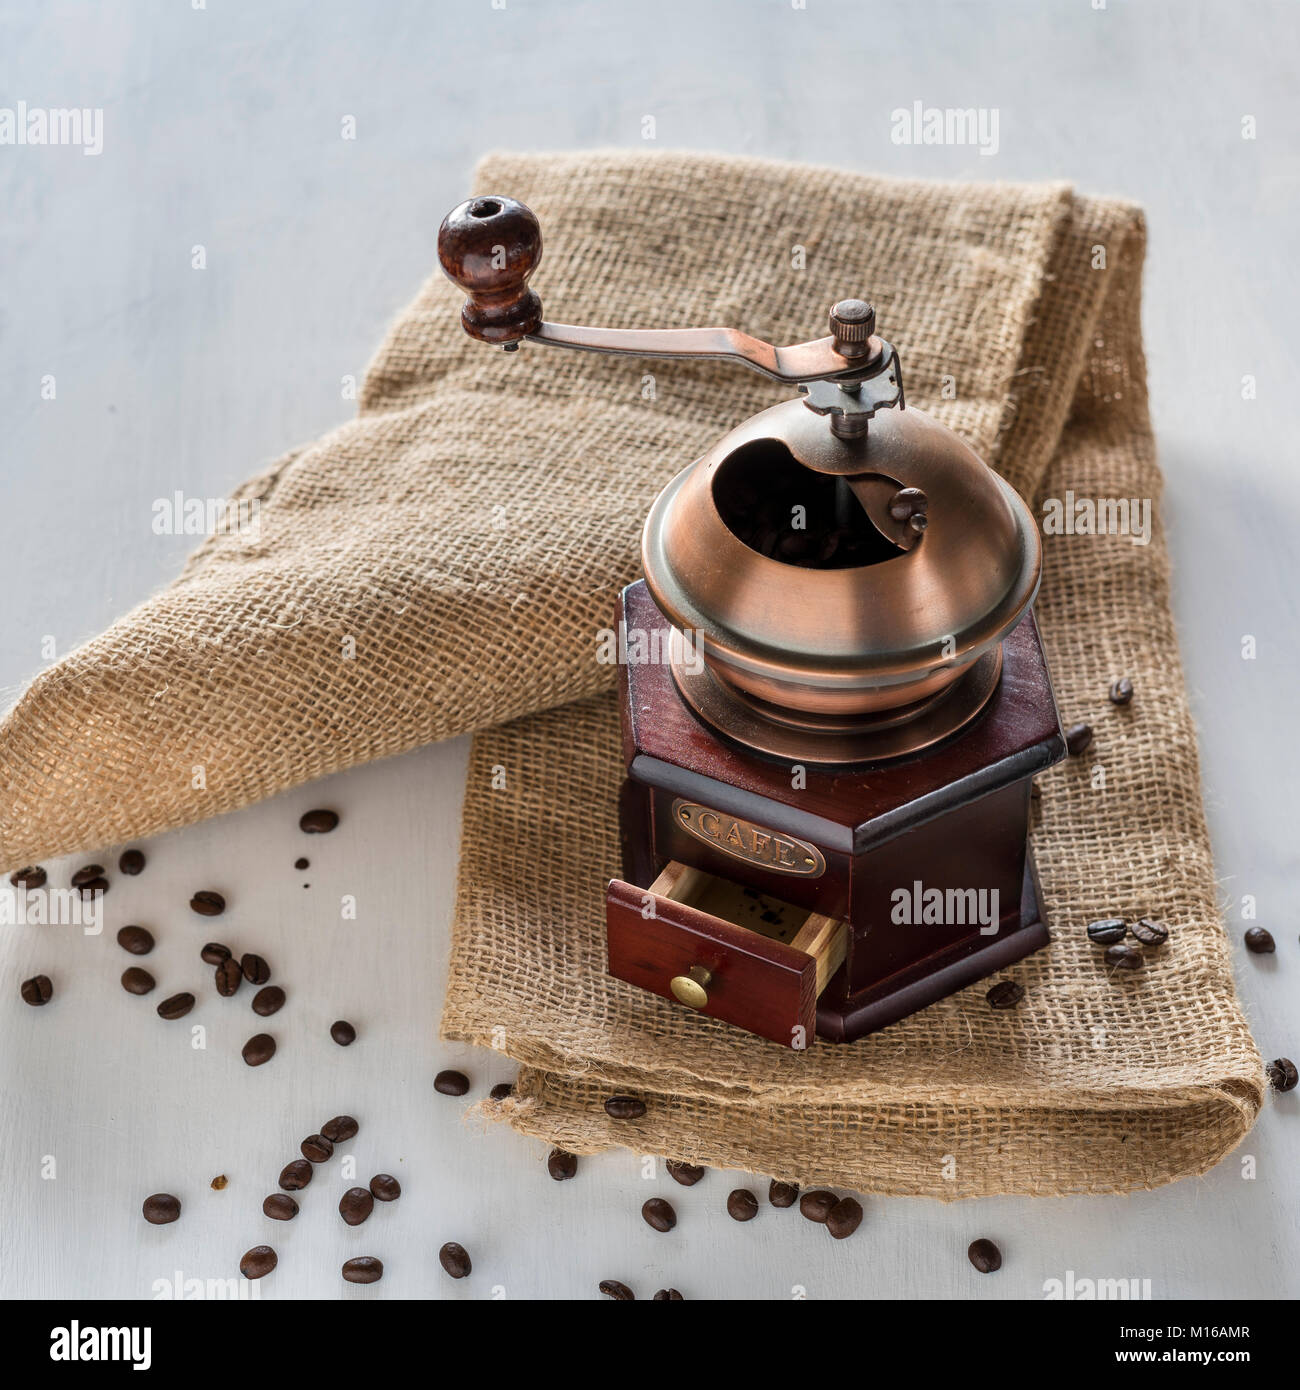 Old coffee grinder on jute bag, coffee beans on white ground - Stock Image